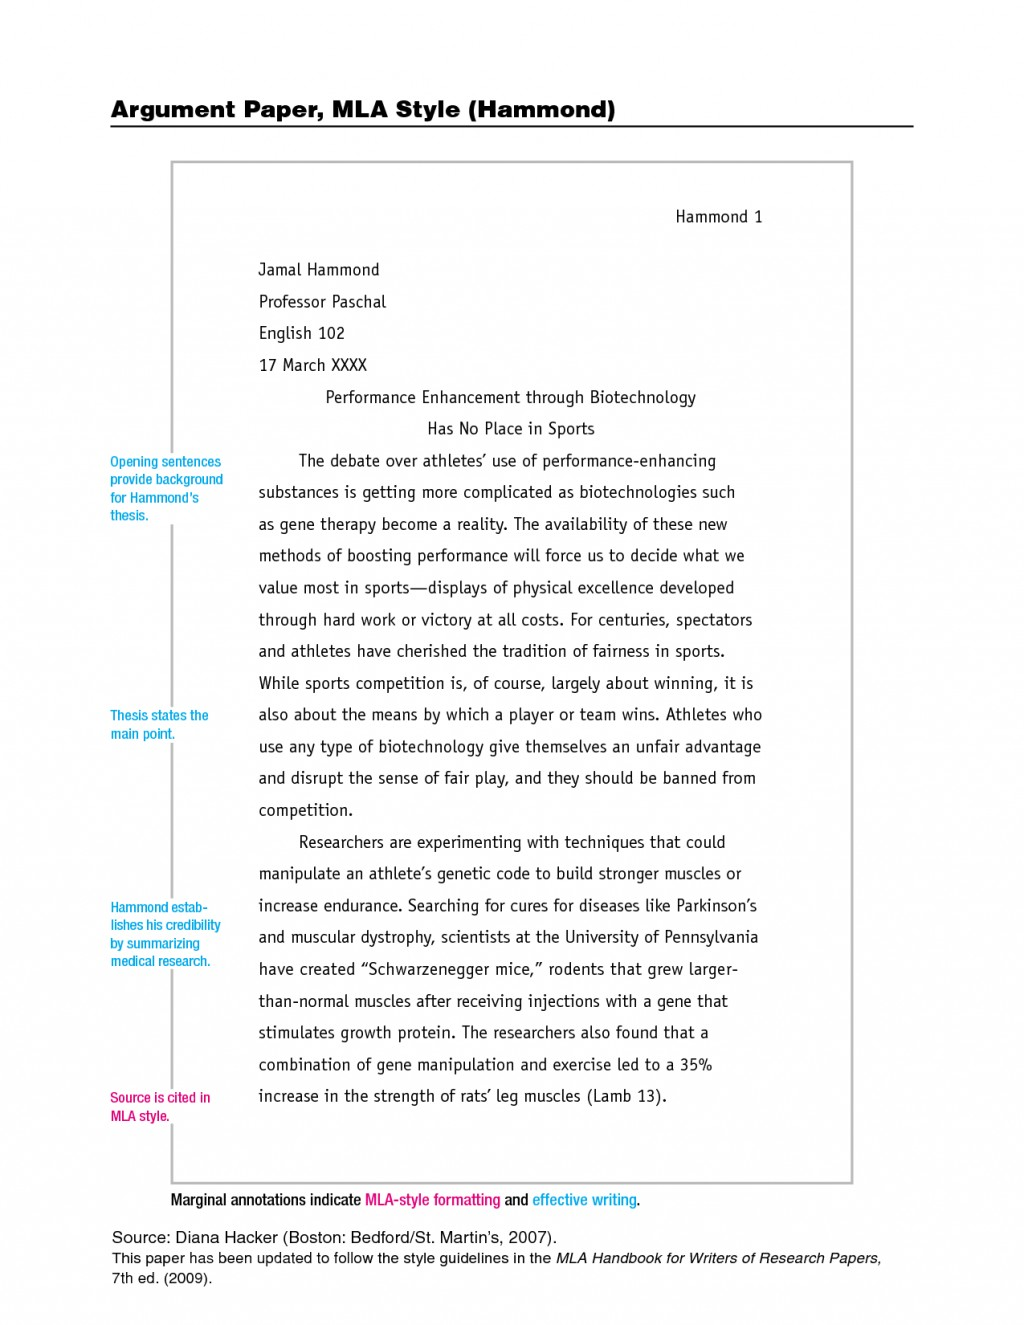 Narrative style paper